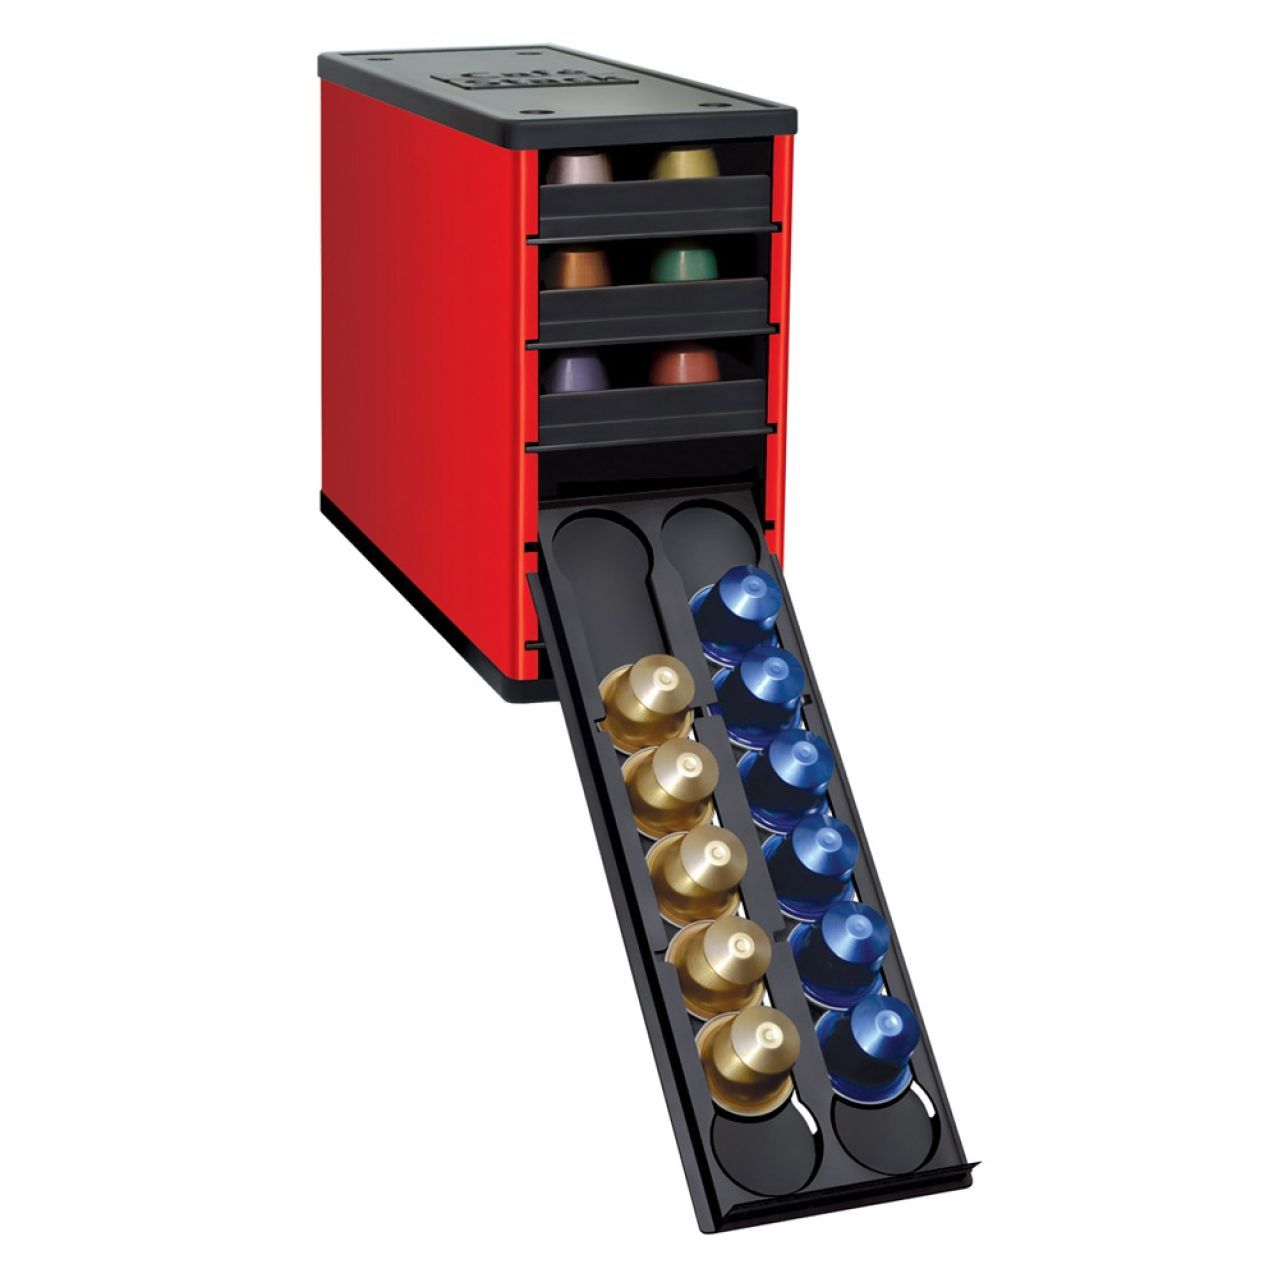 Another Option Fits In Kitchen Cabinet And Holds 60 Nespresso Pods Youcopia Caféstack Capsule Holders Sur La Table